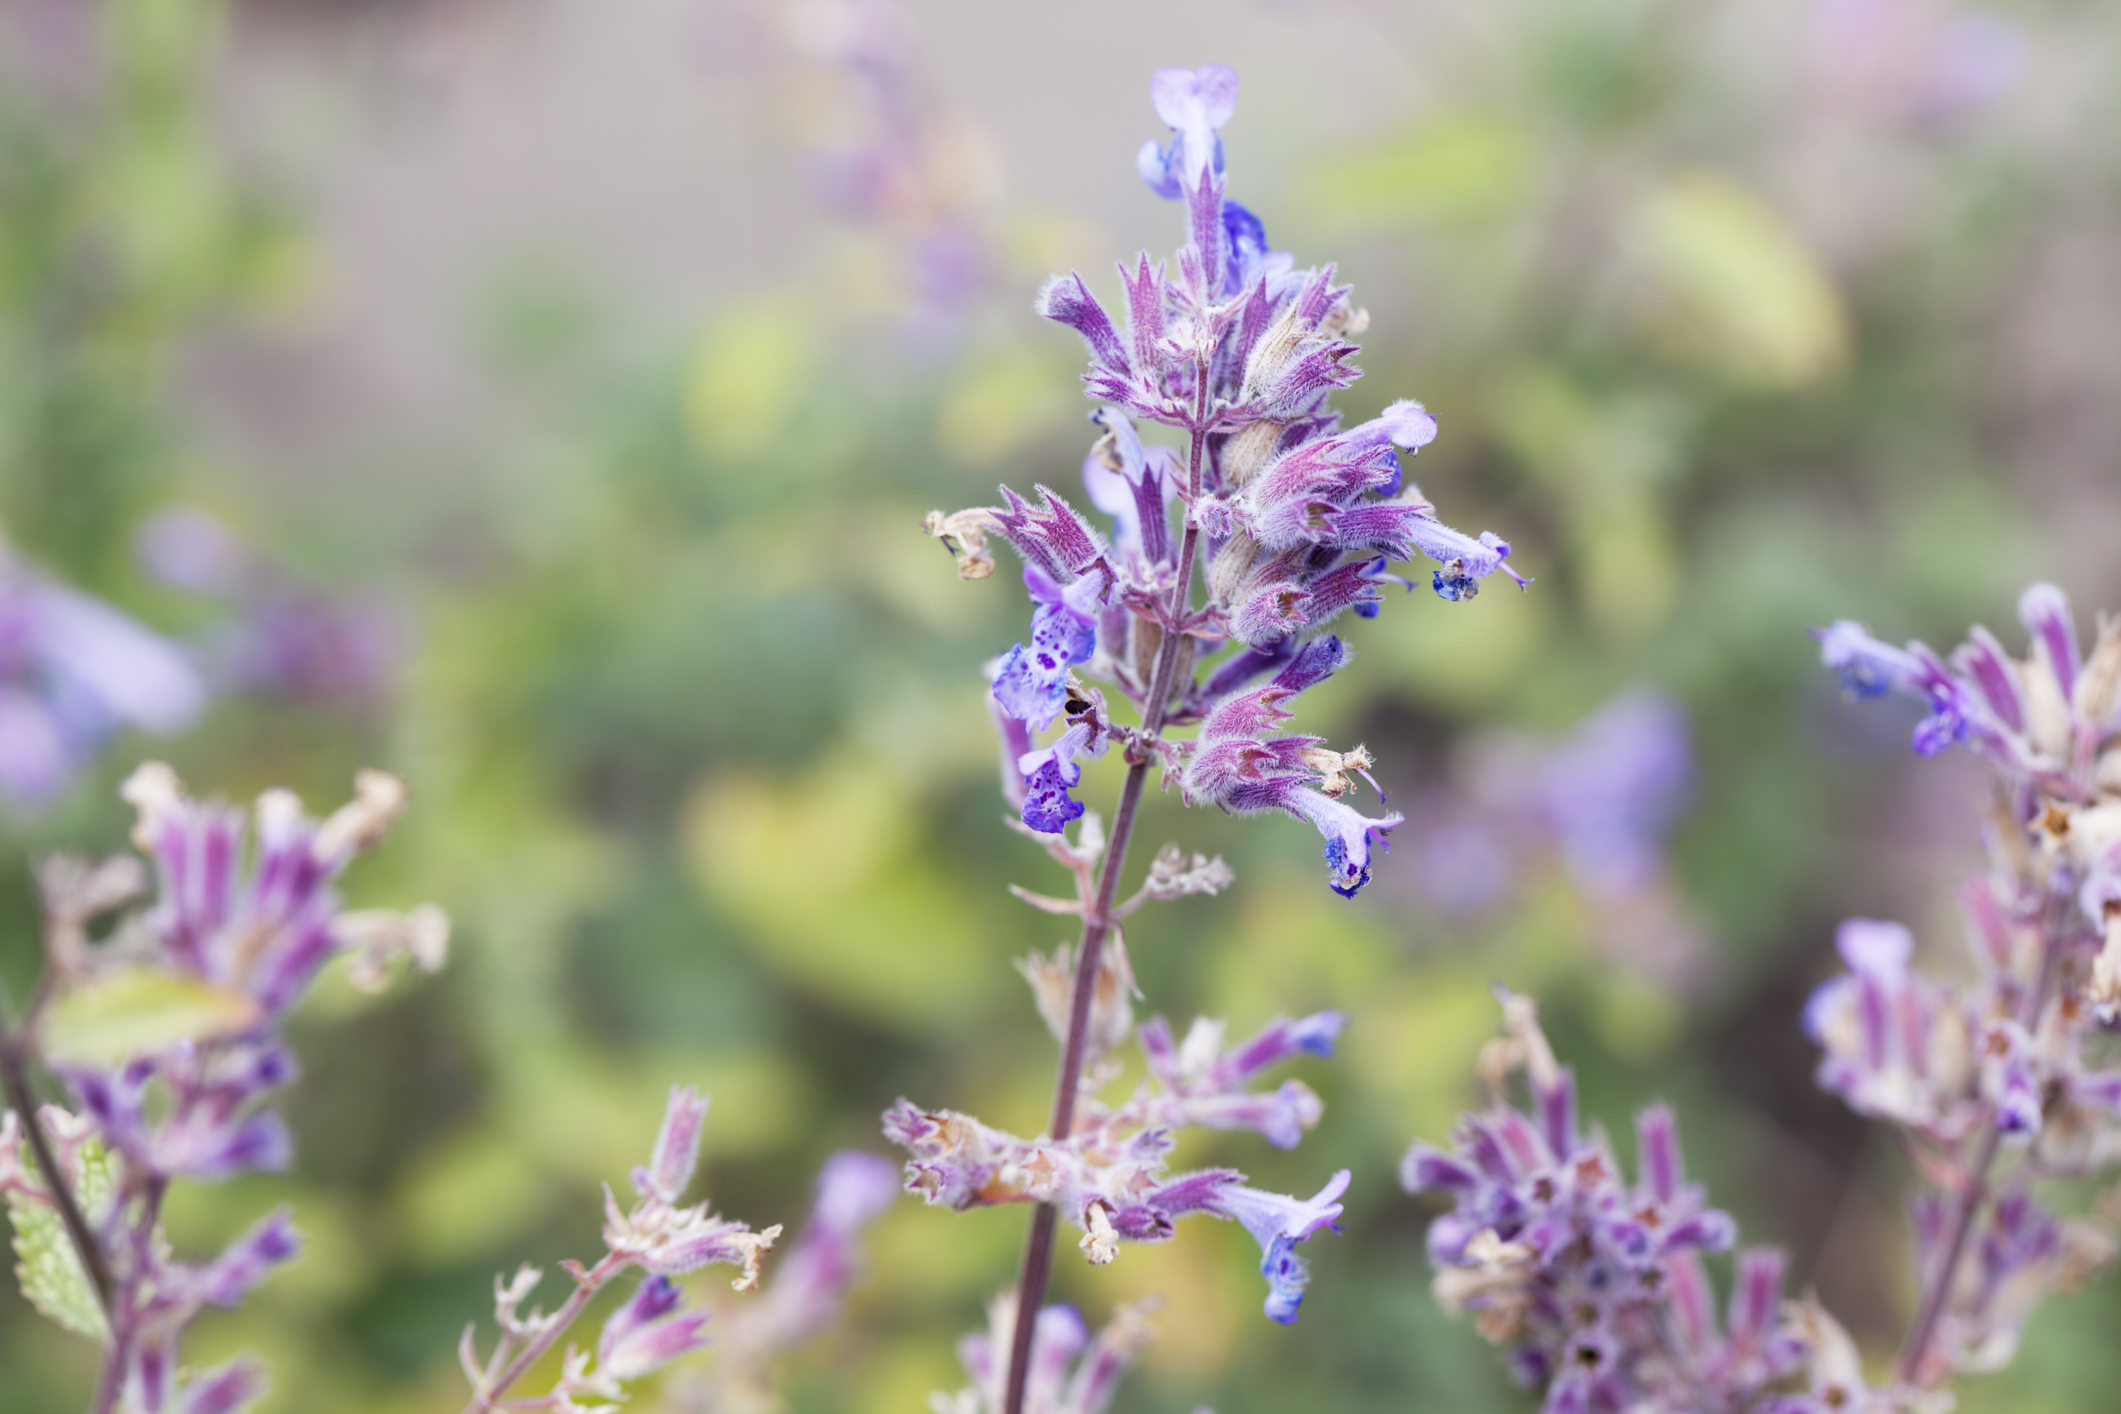 Nepeta cataria, catnip plant close up, used in herbal medicine, attracting cats as well